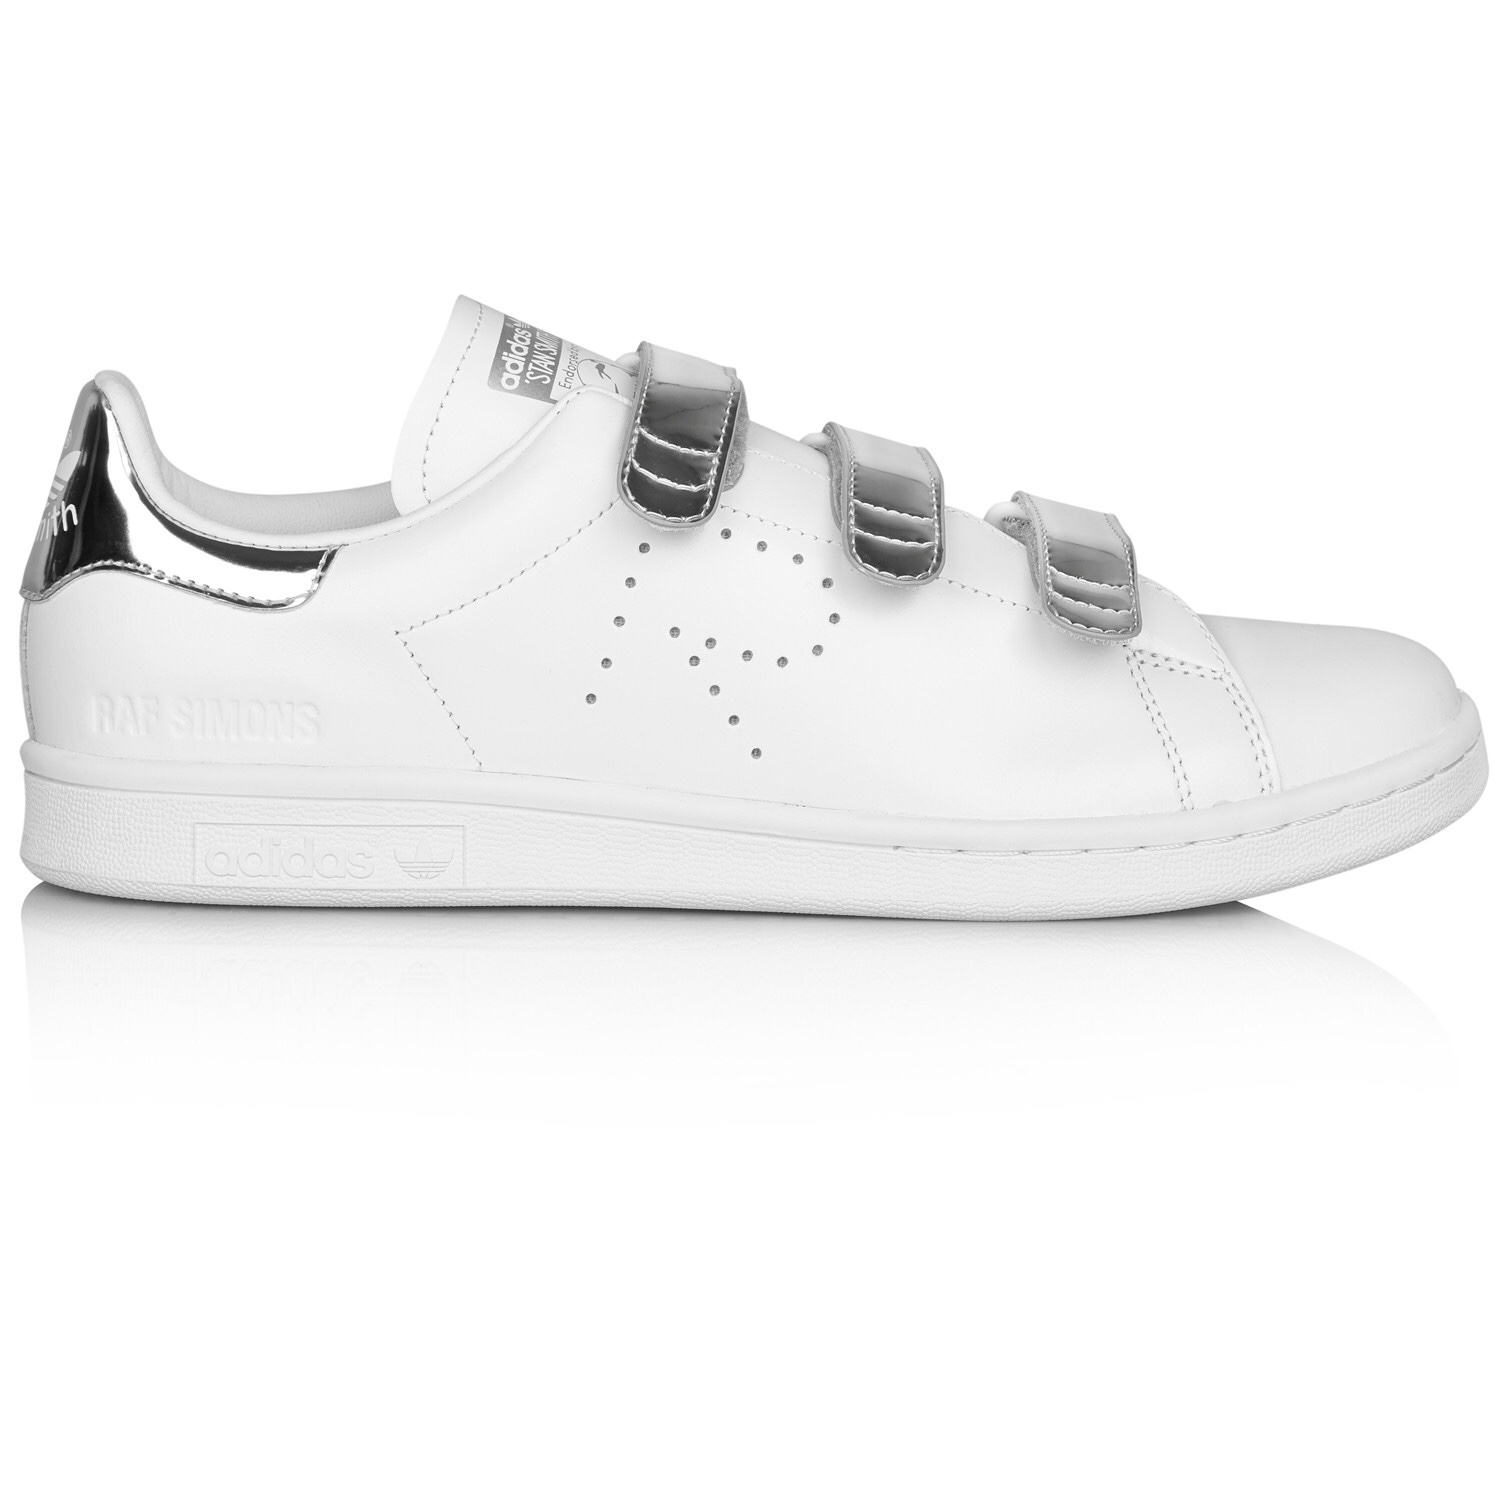 sale retailer c170c ddfc8 adidas x raf simons stan smith white and silver... - Depop